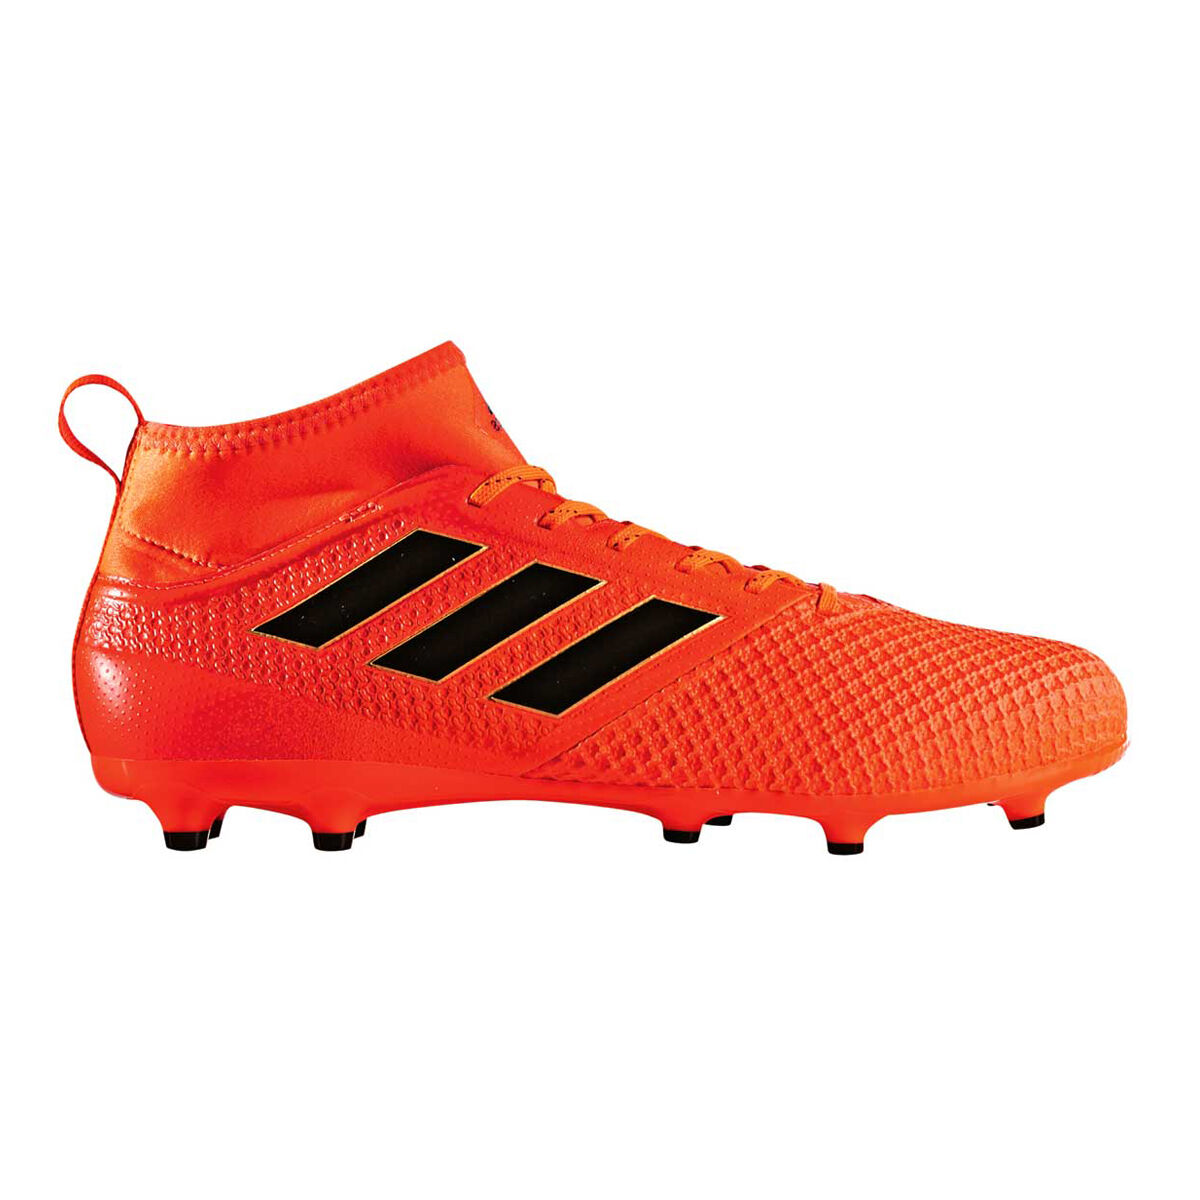 9d4960afba4f ... store fútbol emotion; adidas ace 17.3 mens football boots black red us  7.5 adult black red